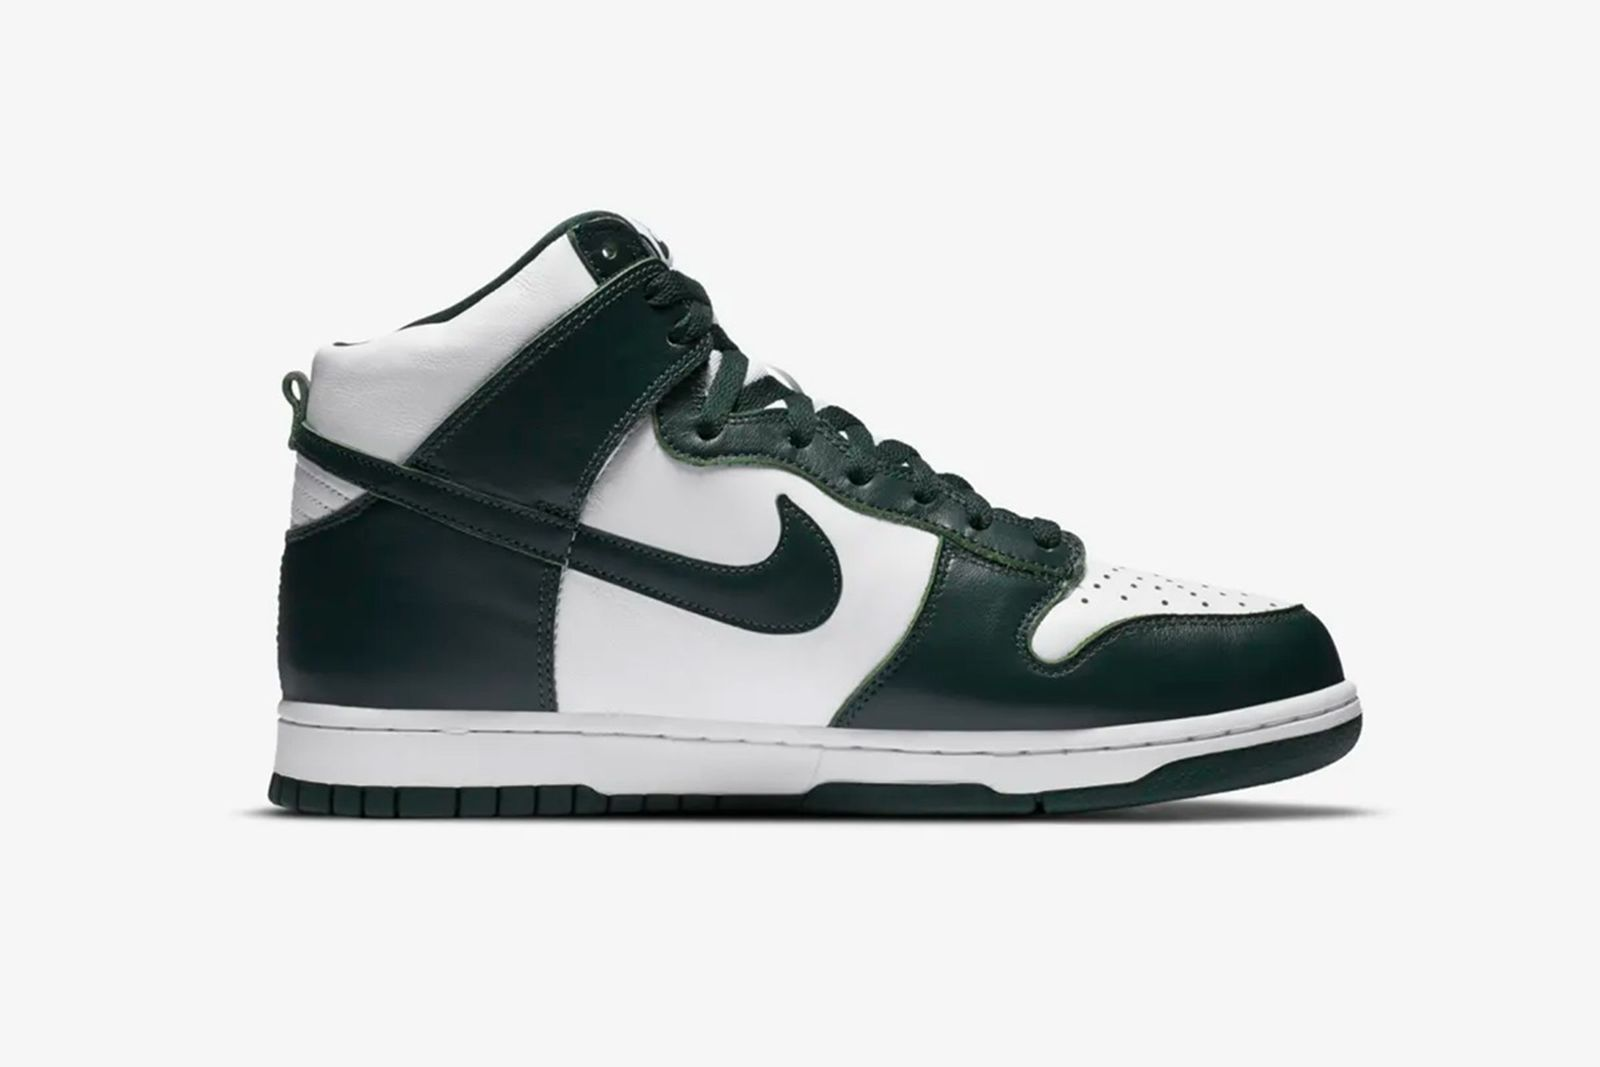 nike-dunk-high-spartan-green-release-date-price-01